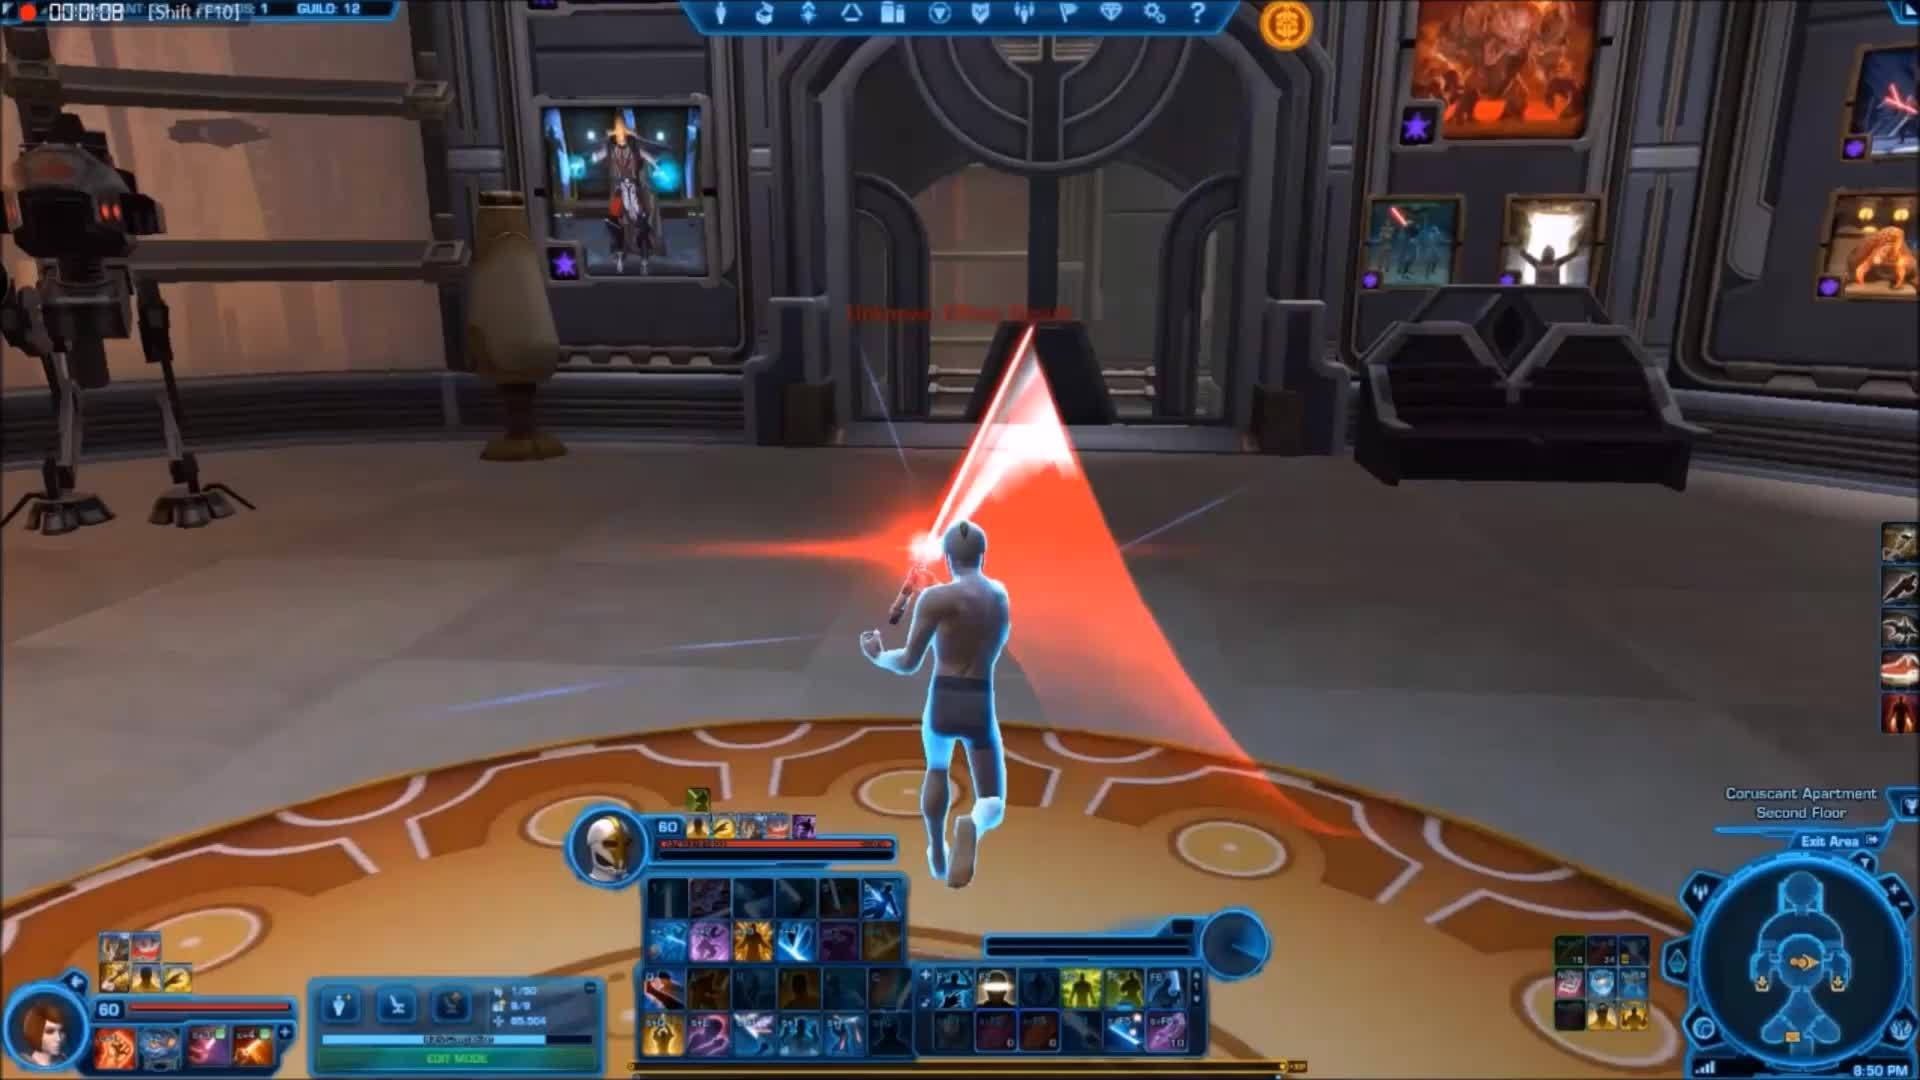 swtor, How I spend the majority of my time in game these days (reddit) GIFs